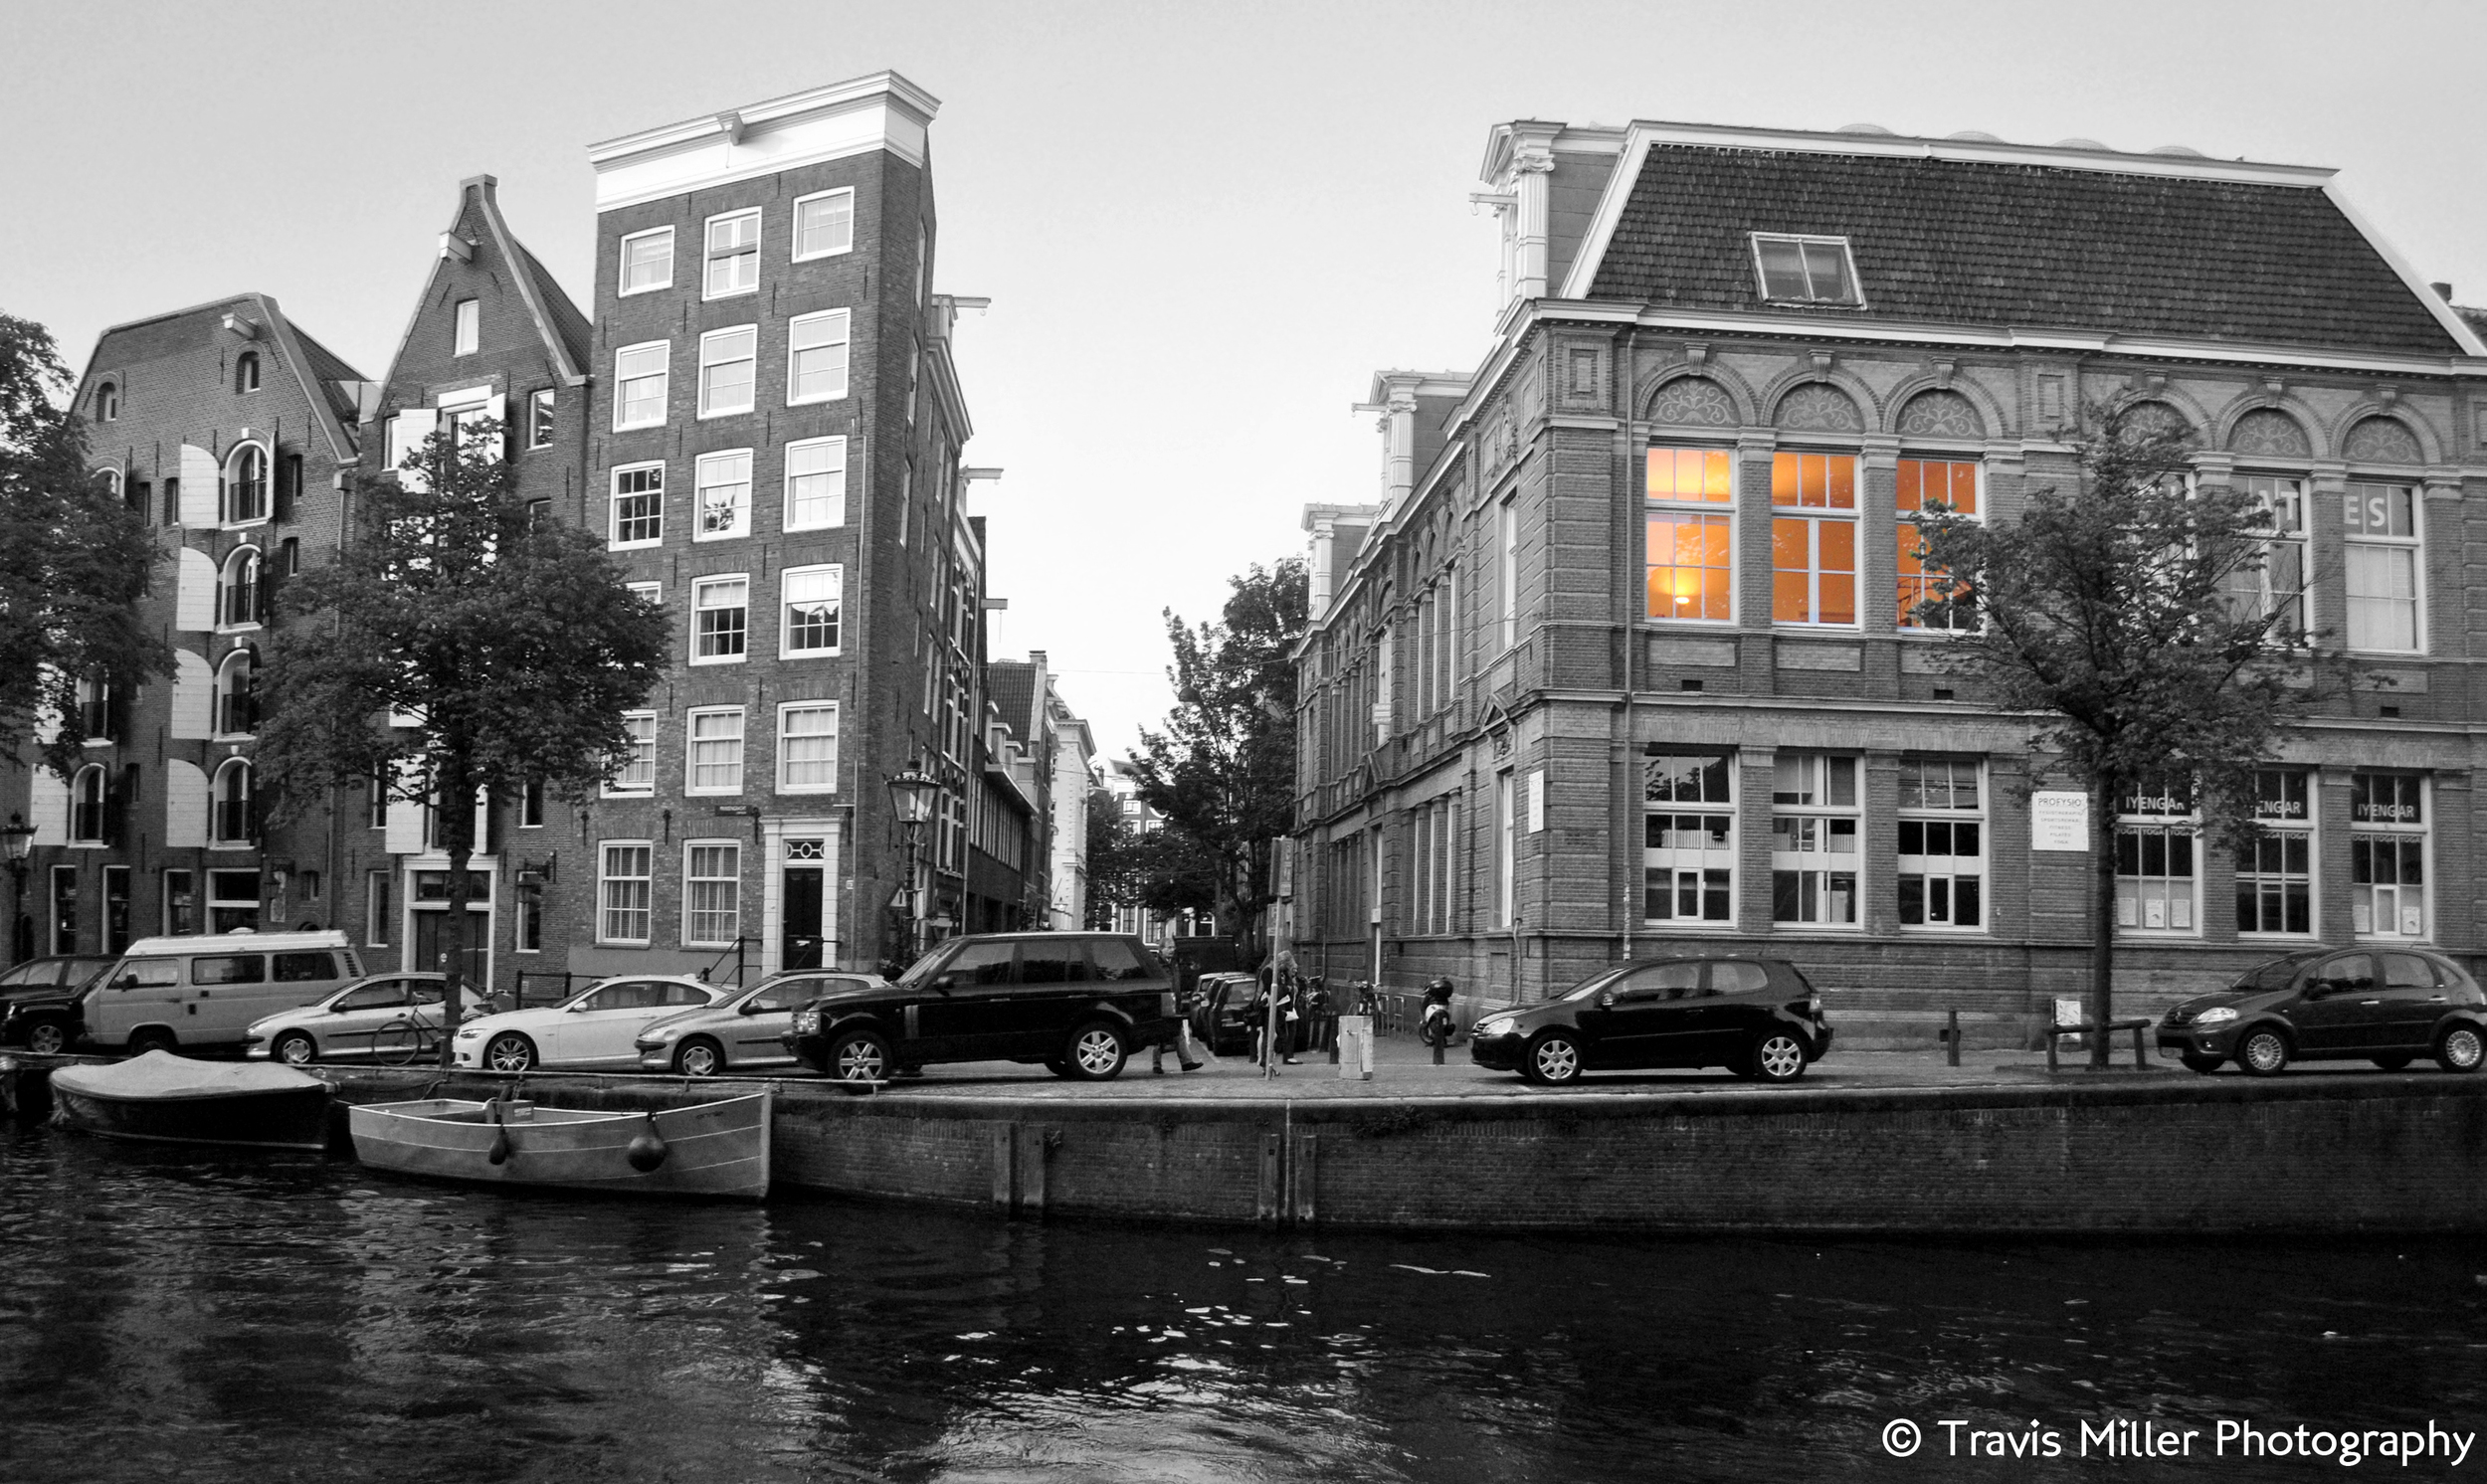 Evening Approaches /  Amsterdam, The Netherlands